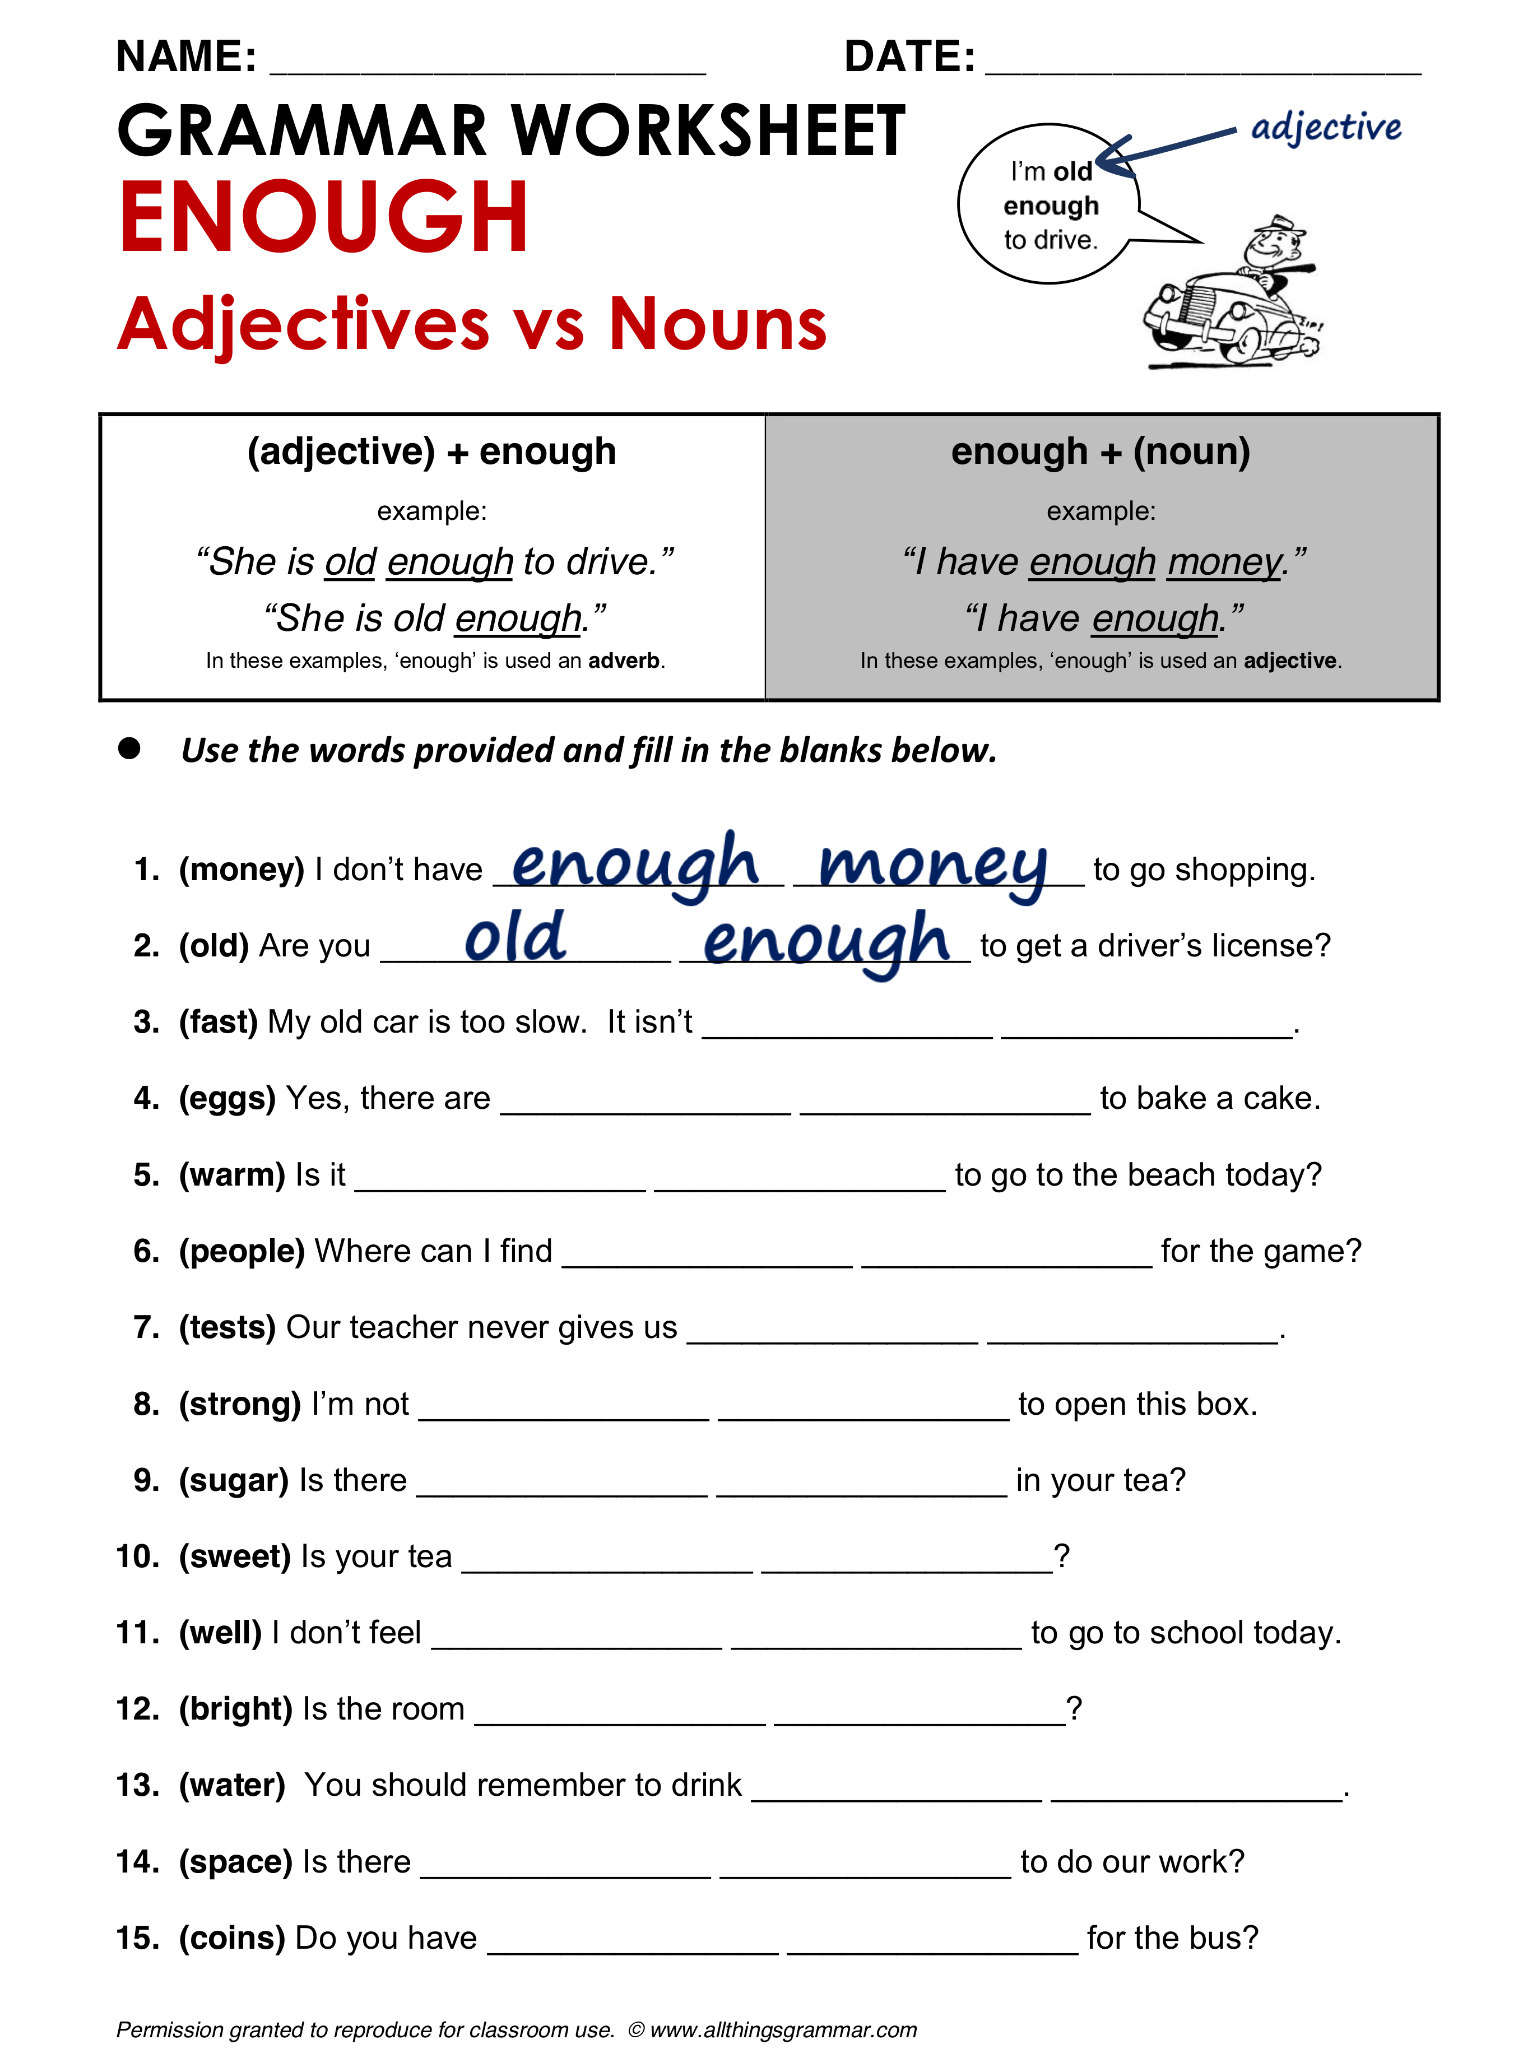 Worksheets Driver Education Worksheets english grammar enough adjectives vs nouns www allthingsgrammar quiz